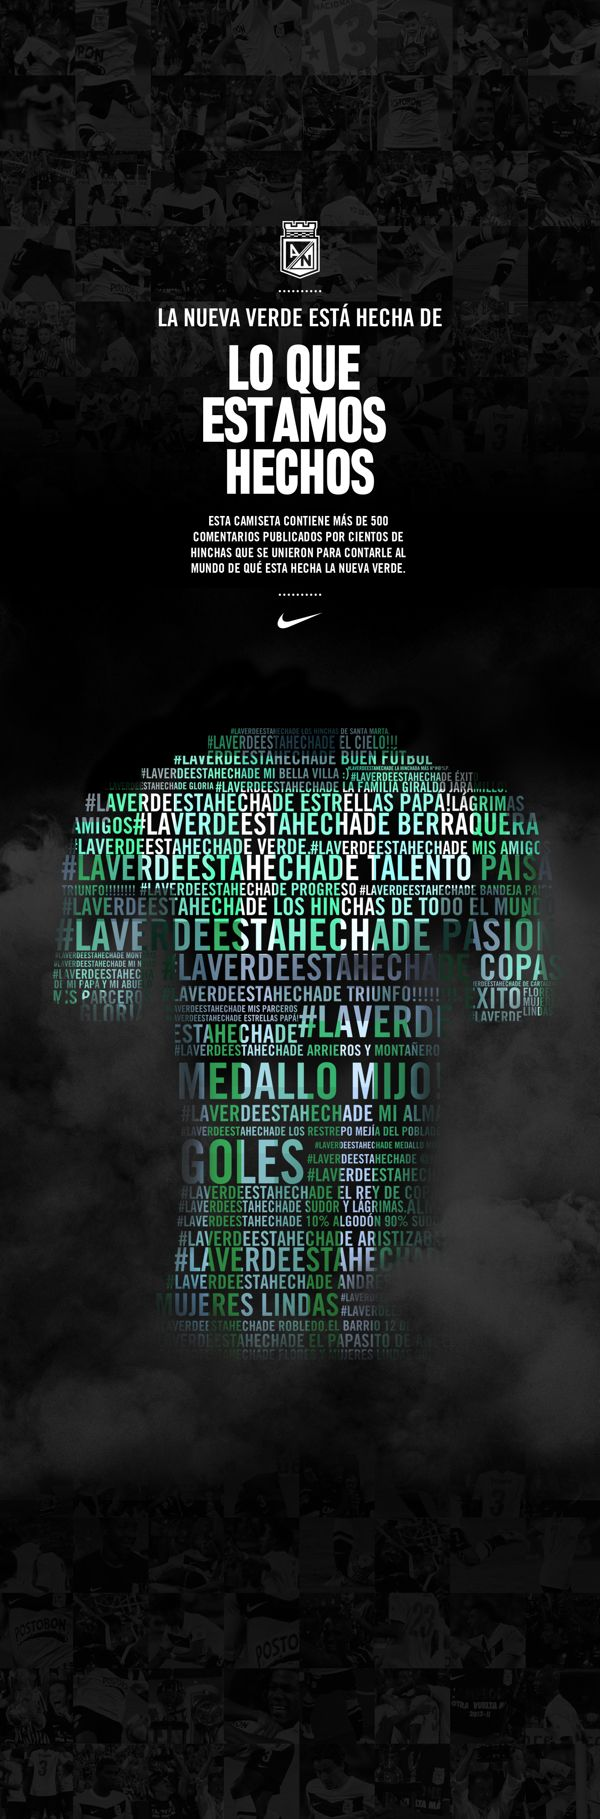 Nike / Atletico Nacional on Behance